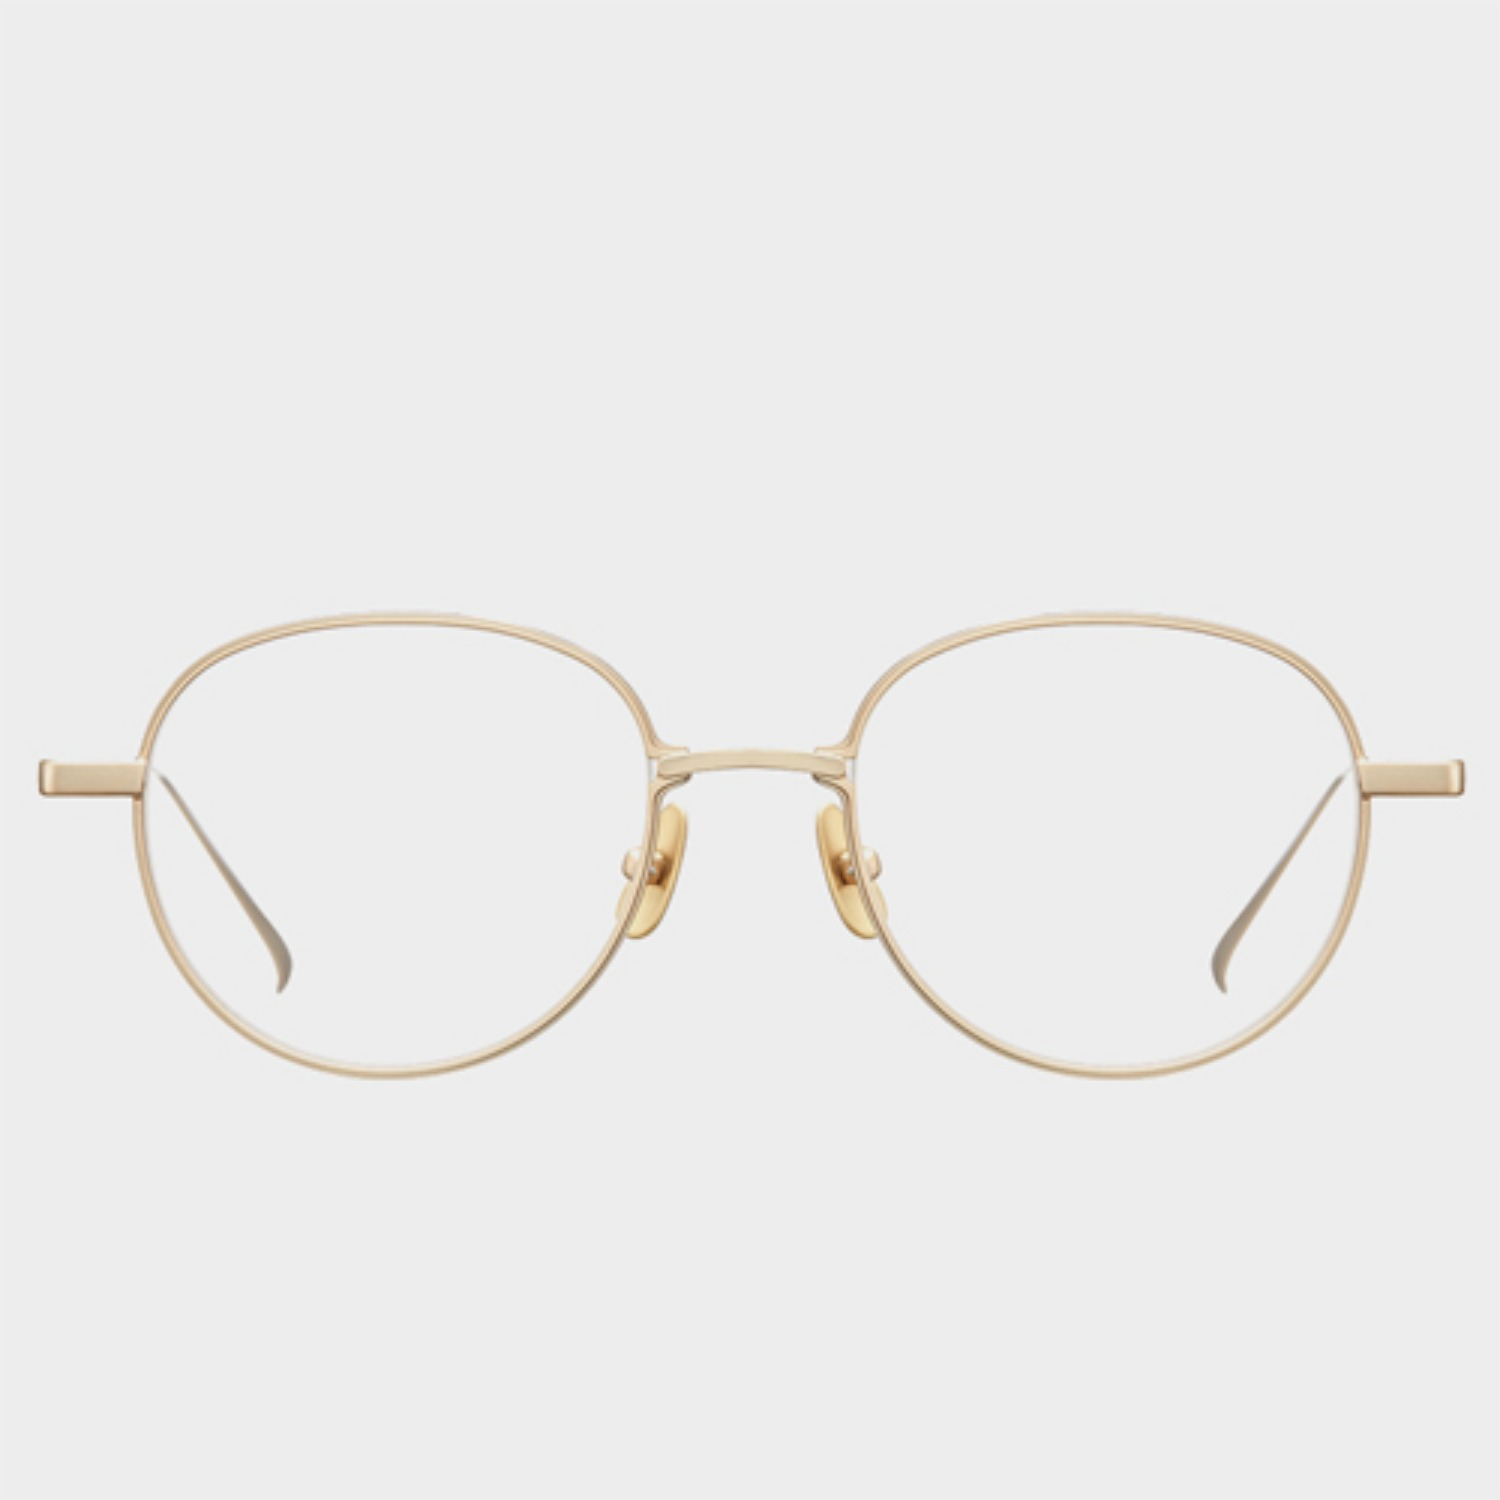 d3beade0a0 Quick View Before add to wish list. Product    STEALER  HIVE STL02  Gold-Toned Frame Rounded Lens Eyeglasses